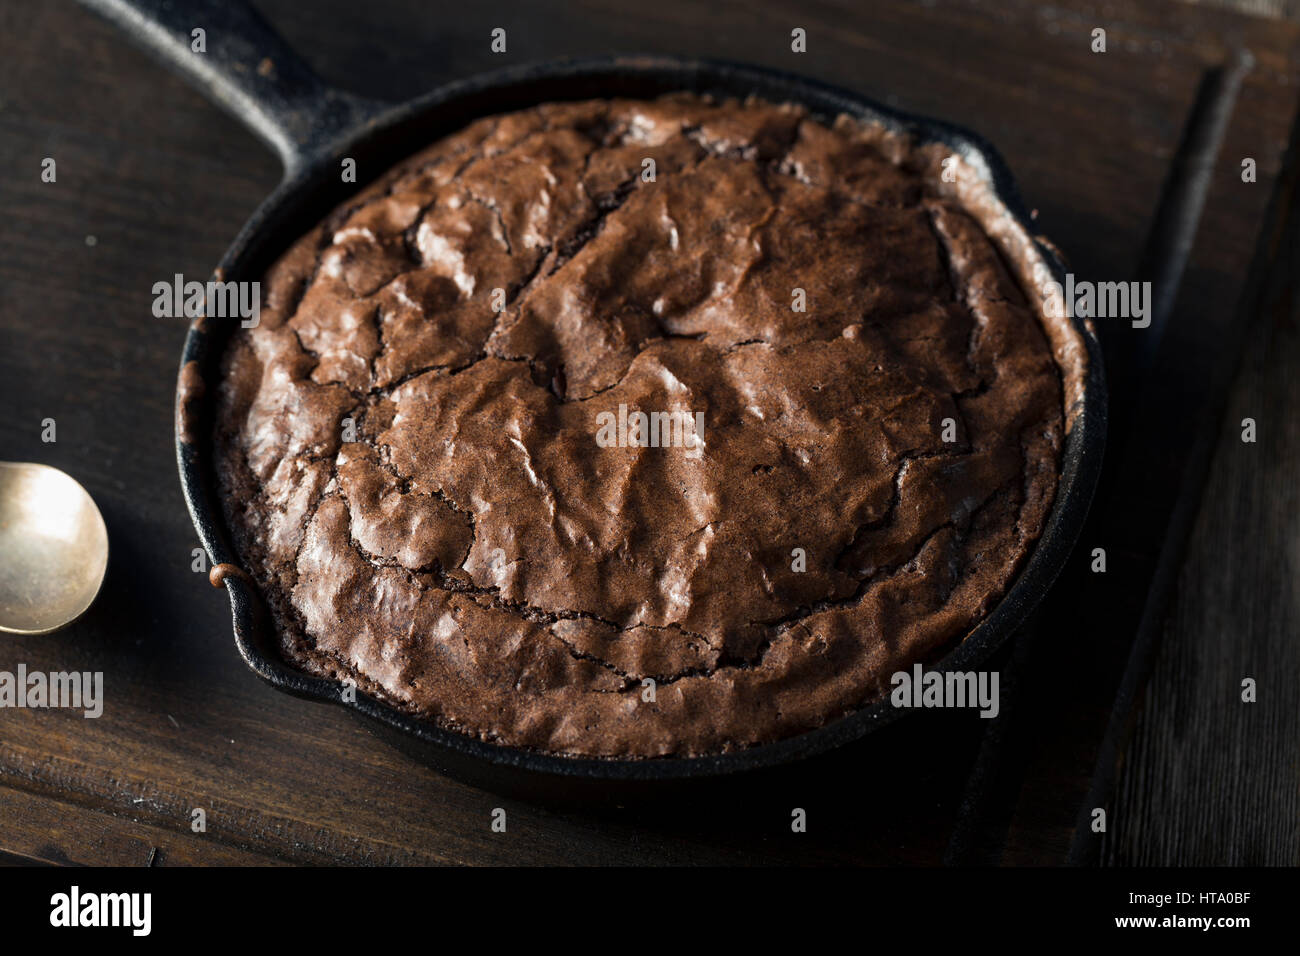 Homemade Sweet Dark Chocolate Brownie in a Skillet Ready to Eat - Stock Image